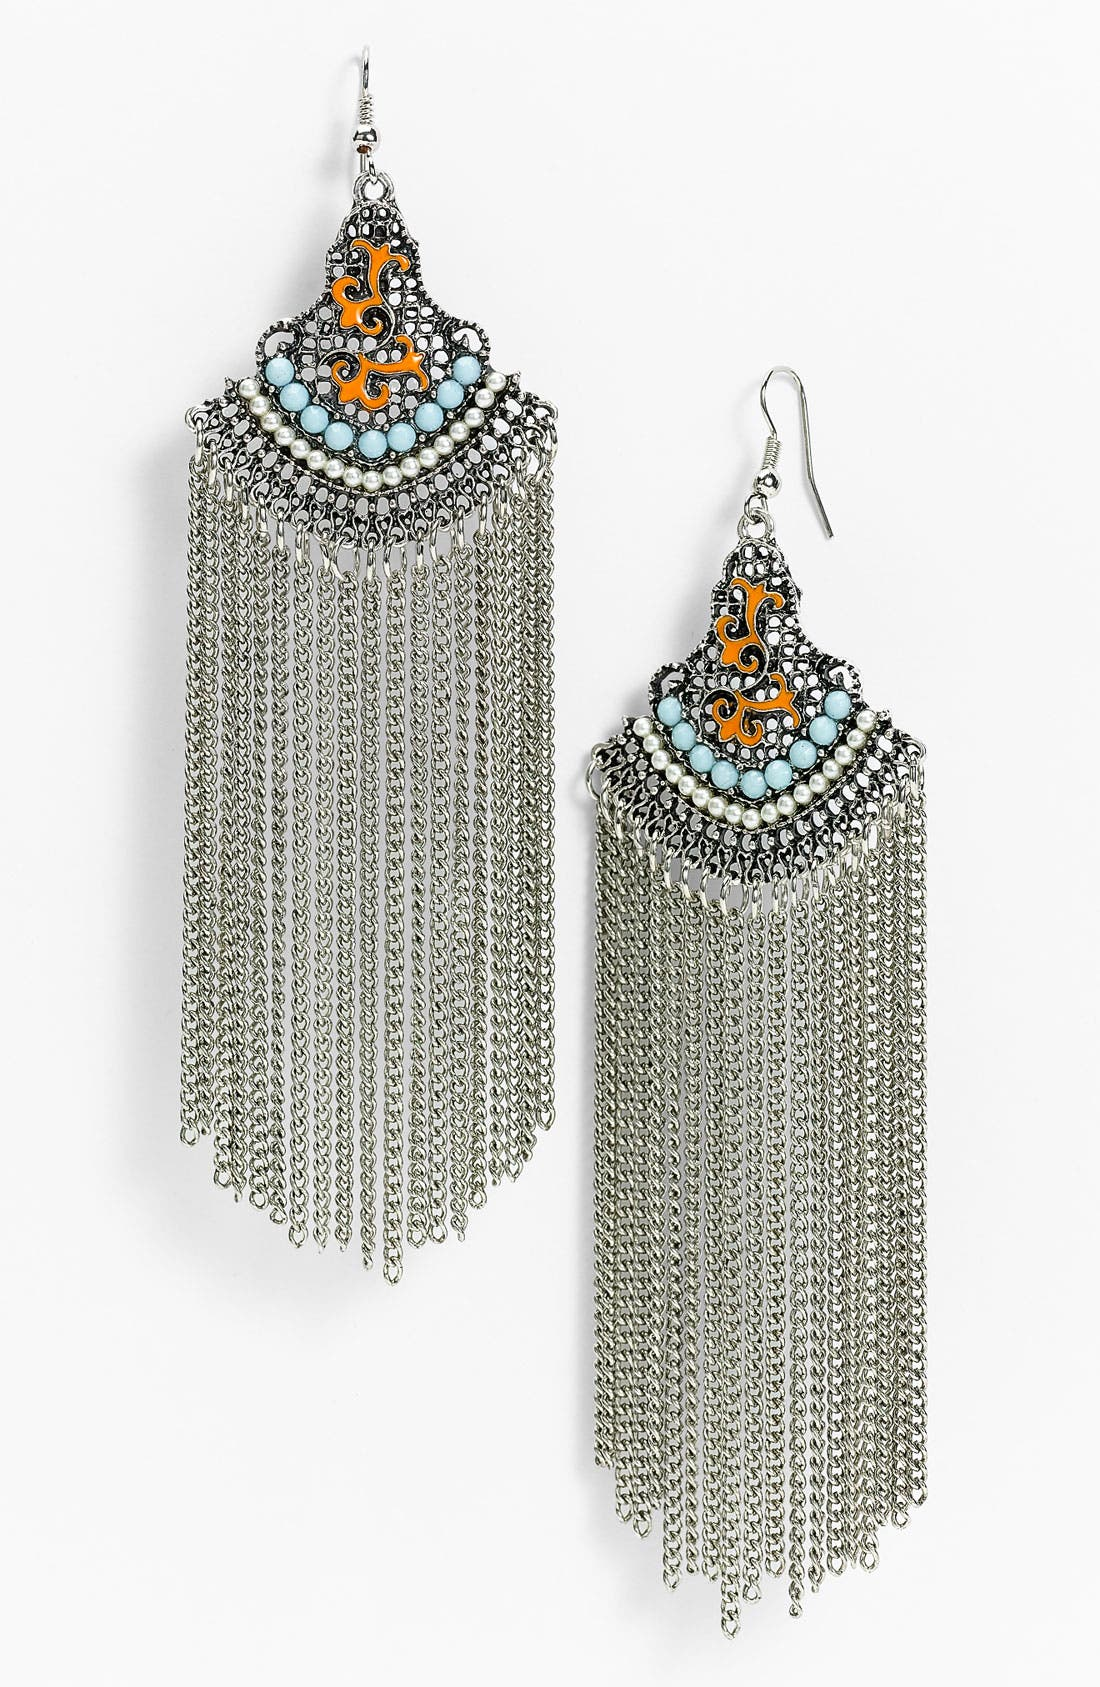 CARA, Couture 'Tribal' Chain Fringe Statement Earrings, Main thumbnail 1, color, 040